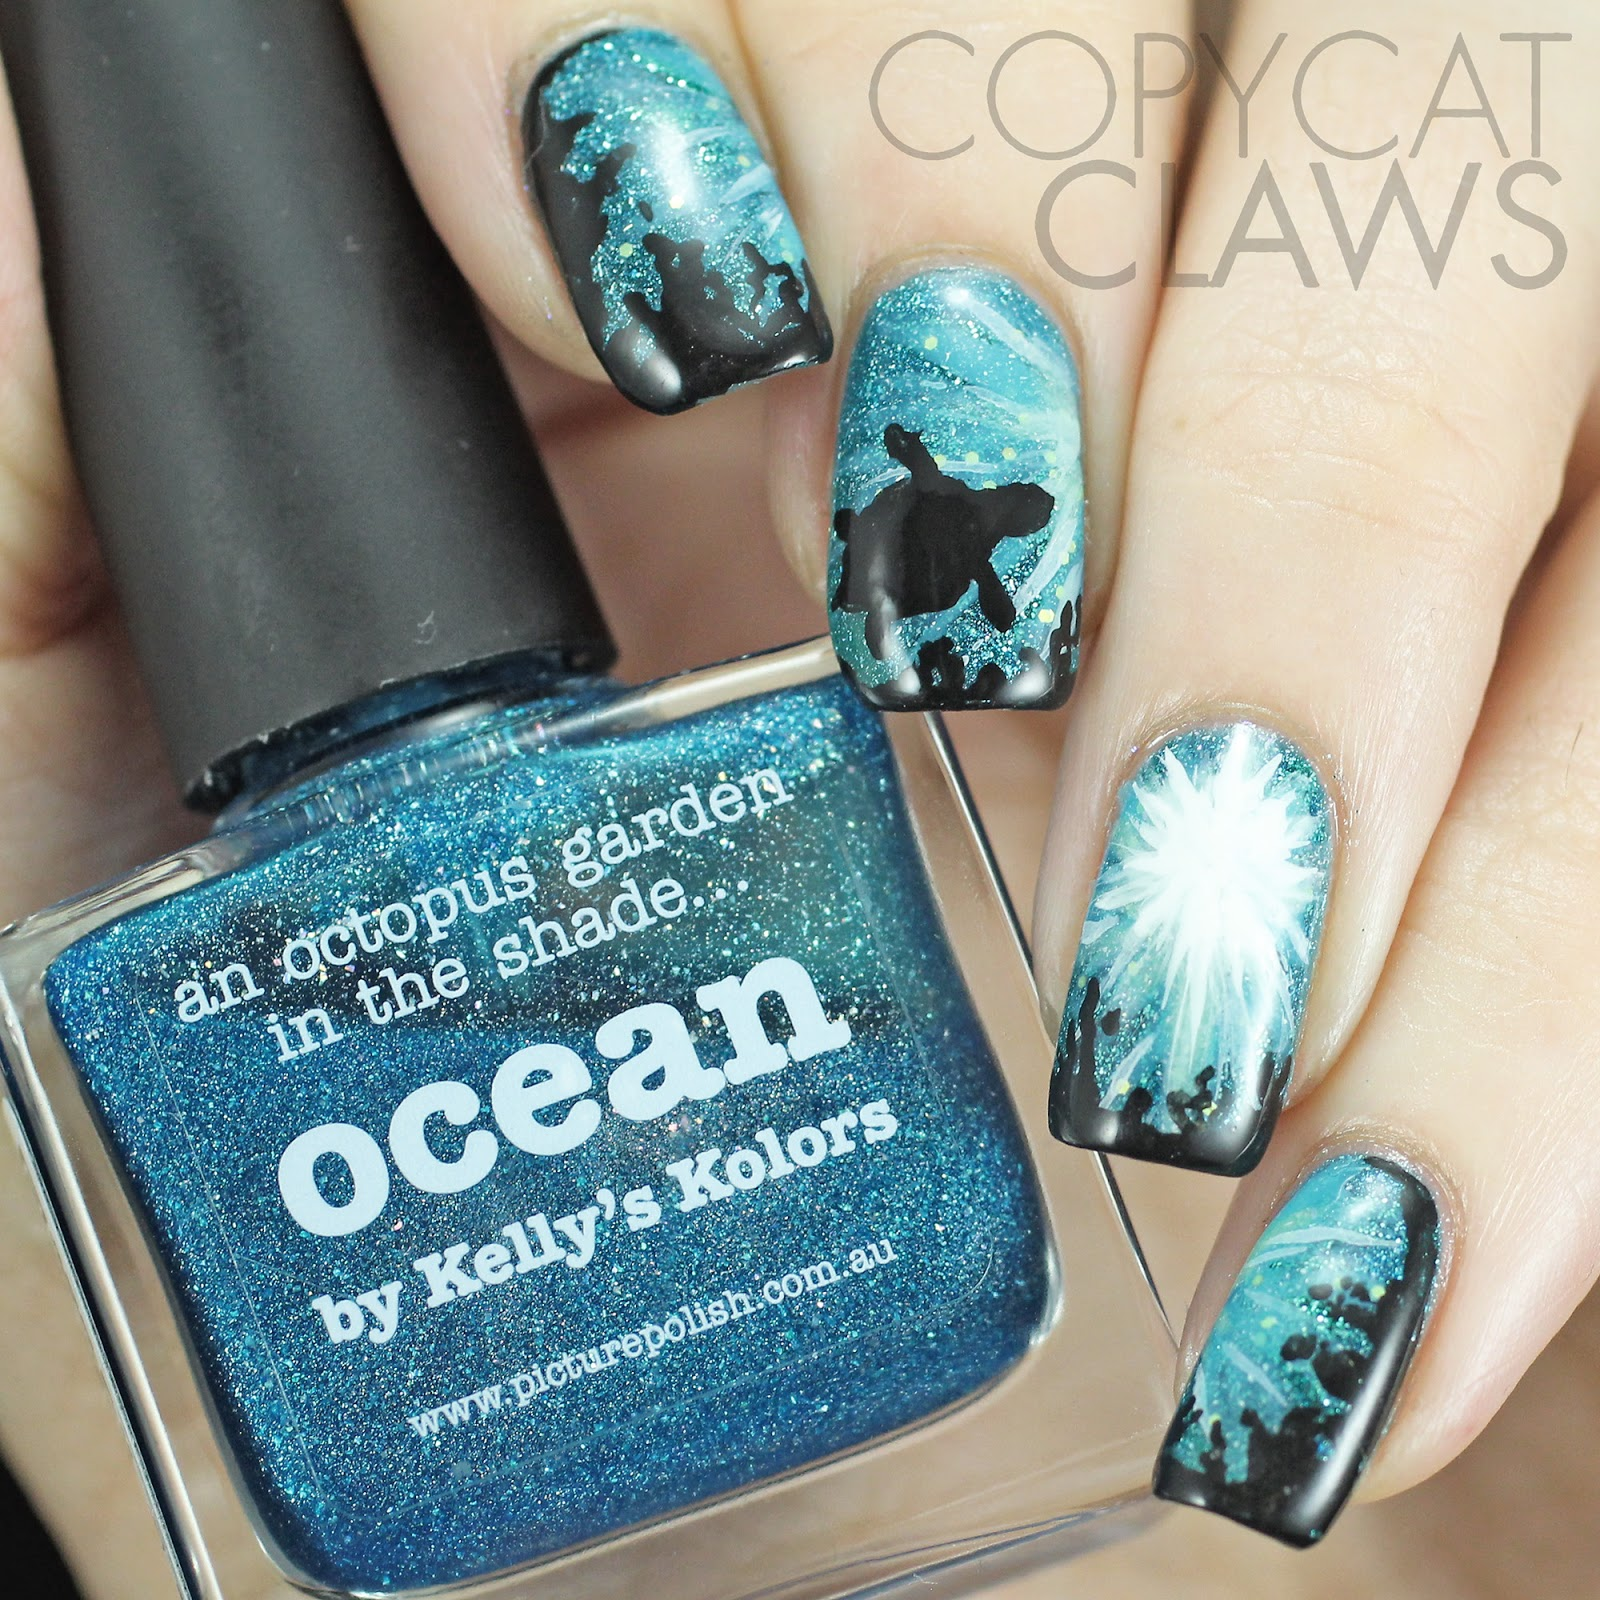 Copycat claws the digit al dozen does nature day 1 sea turtle the digit al dozen does nature day 1 sea turtle nail art prinsesfo Gallery